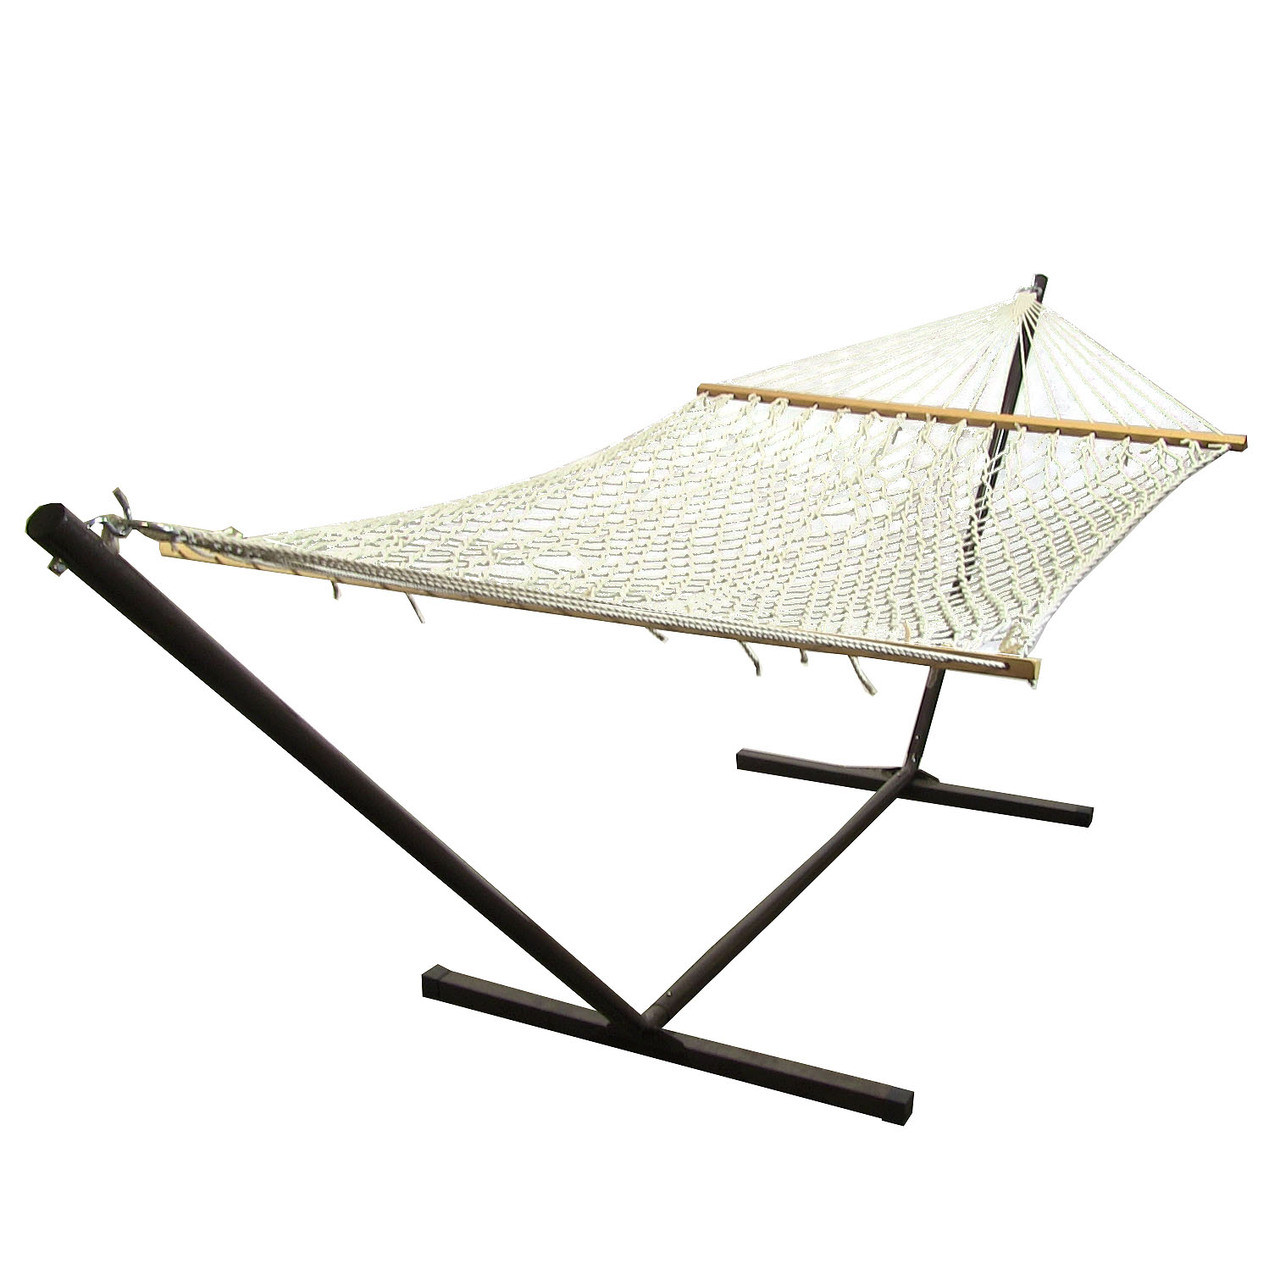 Sunnydaze Polyester Rope Hammock Stand Combo WideLong Picture 391